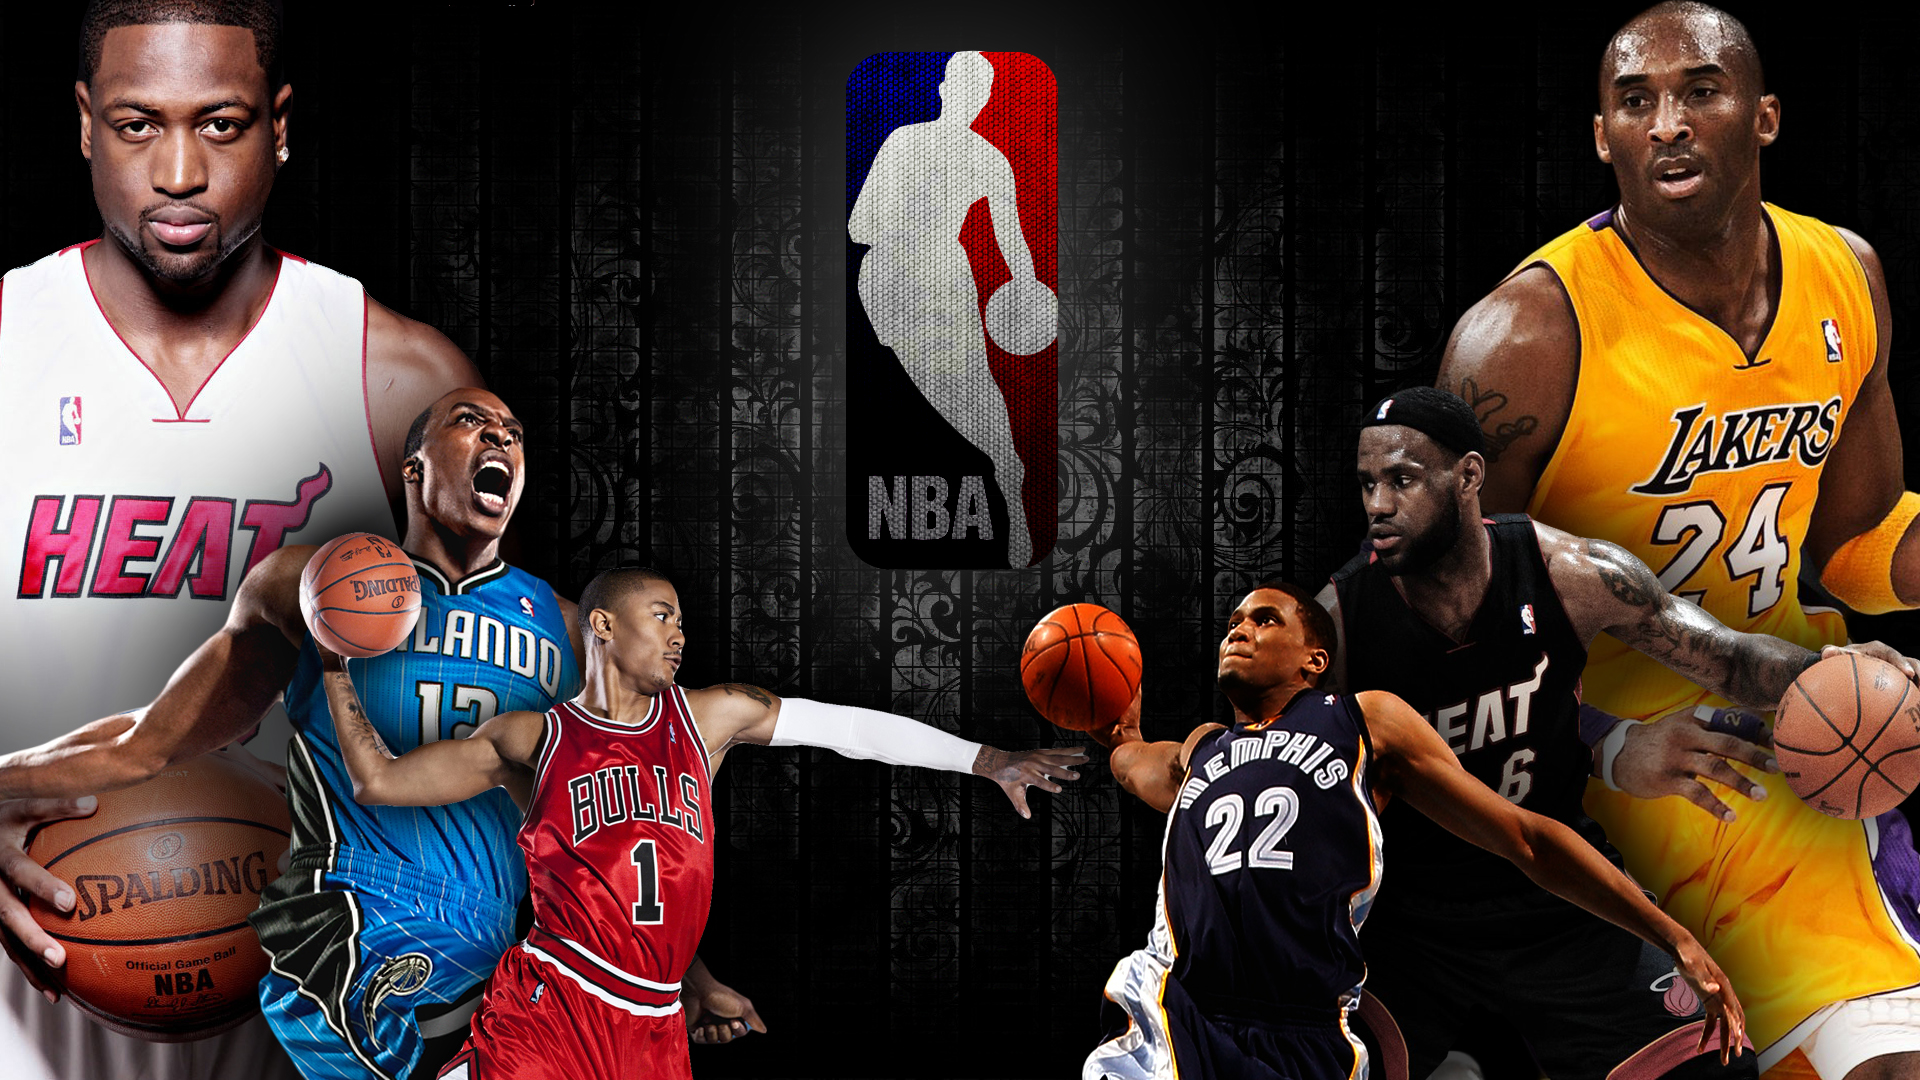 Best Hd Nba Wallpapers